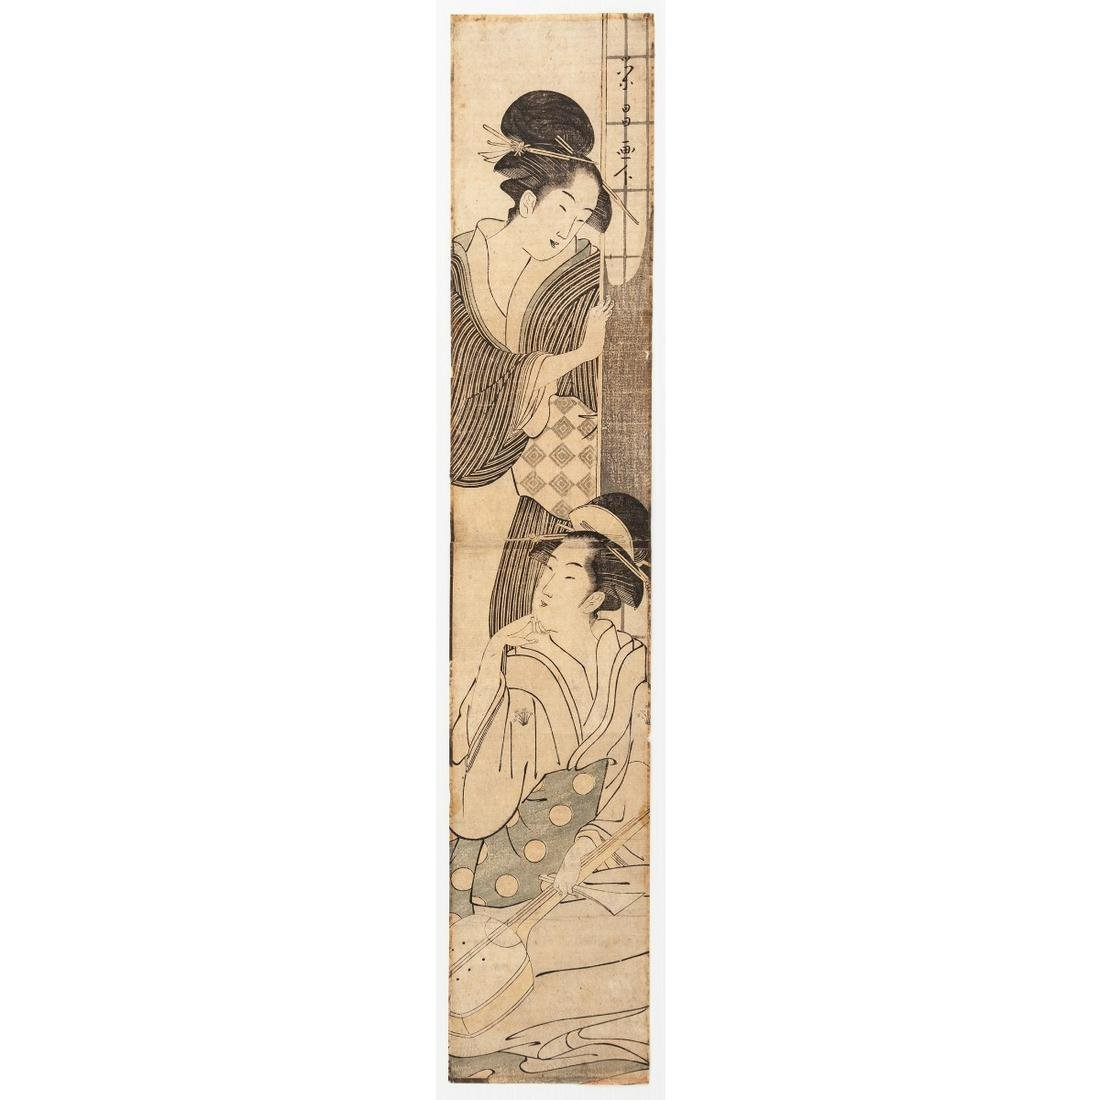 Eisho Chokosai, Hashira-e, Beauties and Shamisen